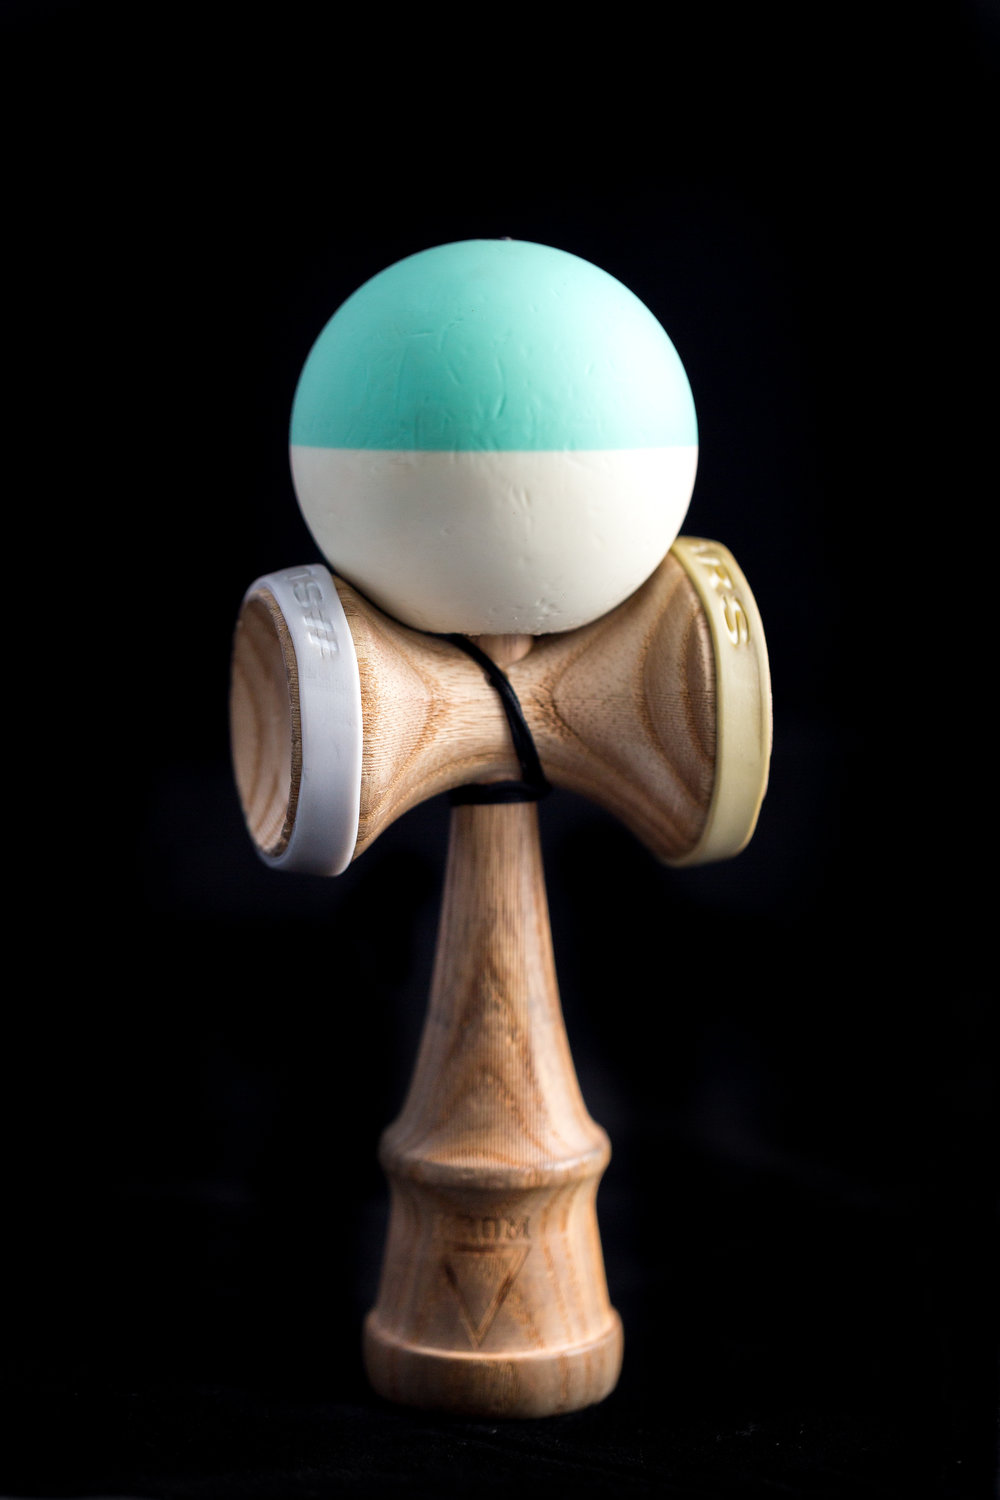 kendama-accessories-slaybands-v3-lunar-balance-21.jpg